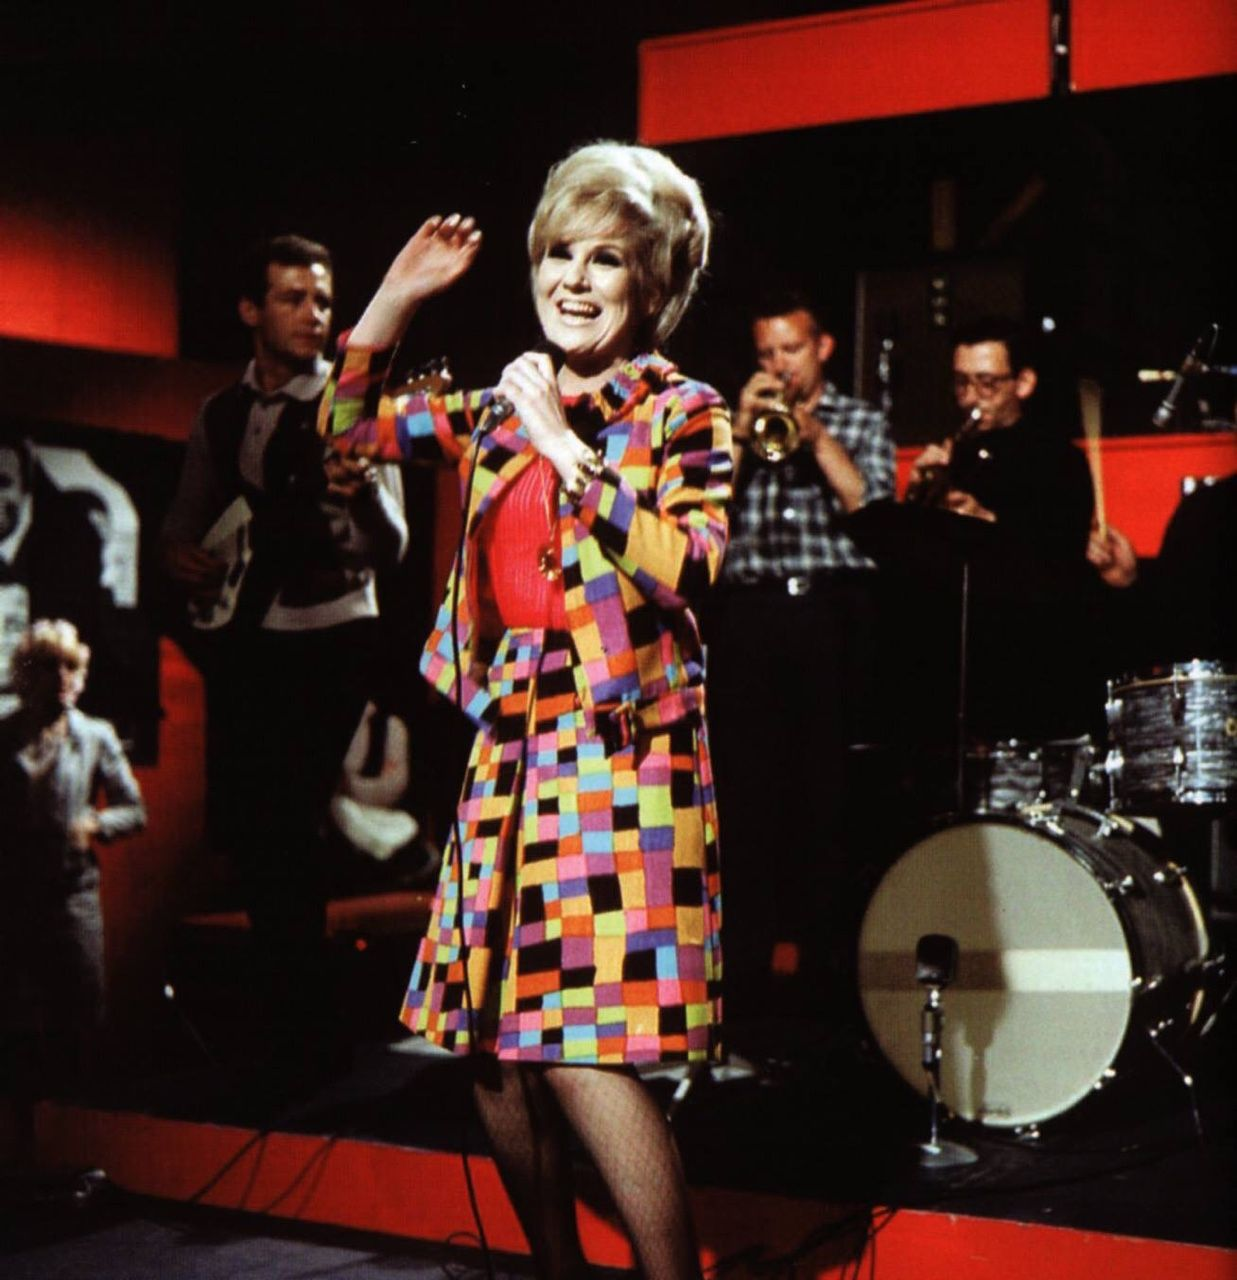 Pin By Isobel On Isobel May Ledden In 2019: Sixties Dusty Springfield 60s Fashion